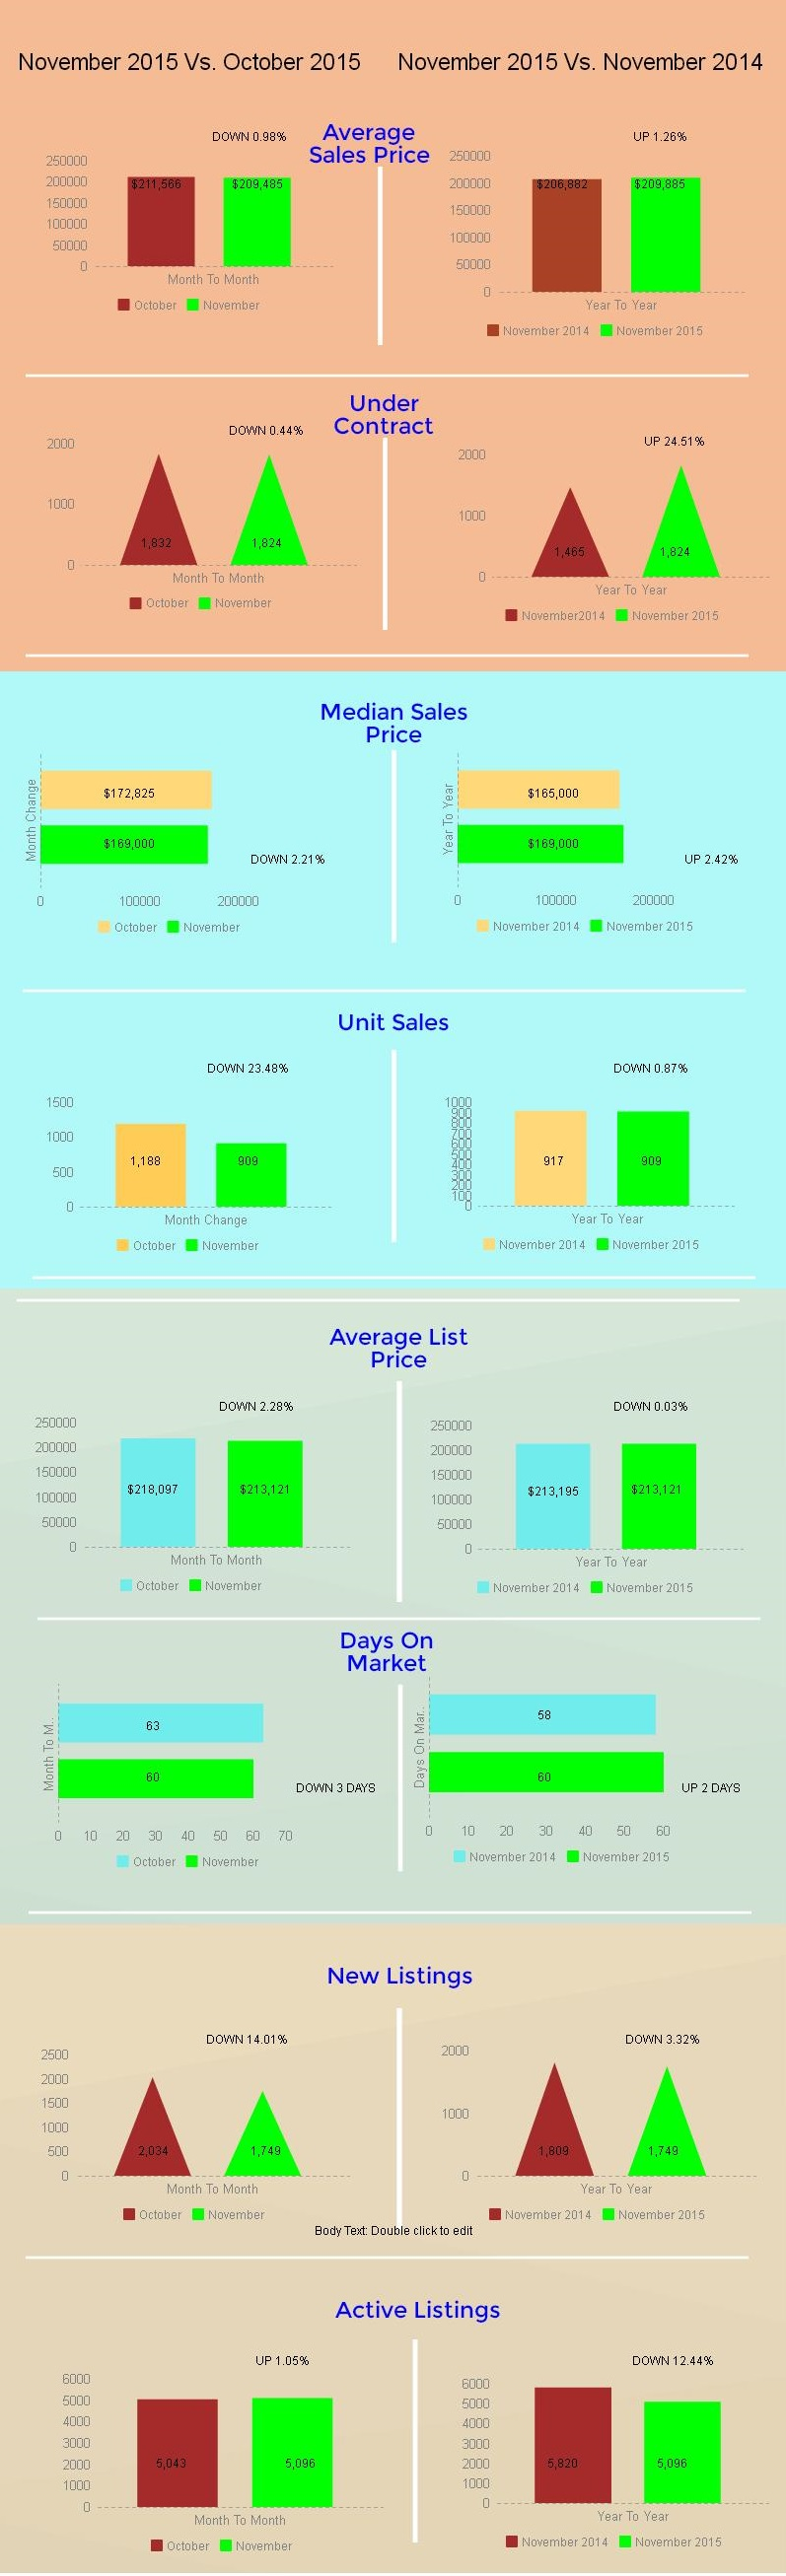 Tucson Housing Market November 2015